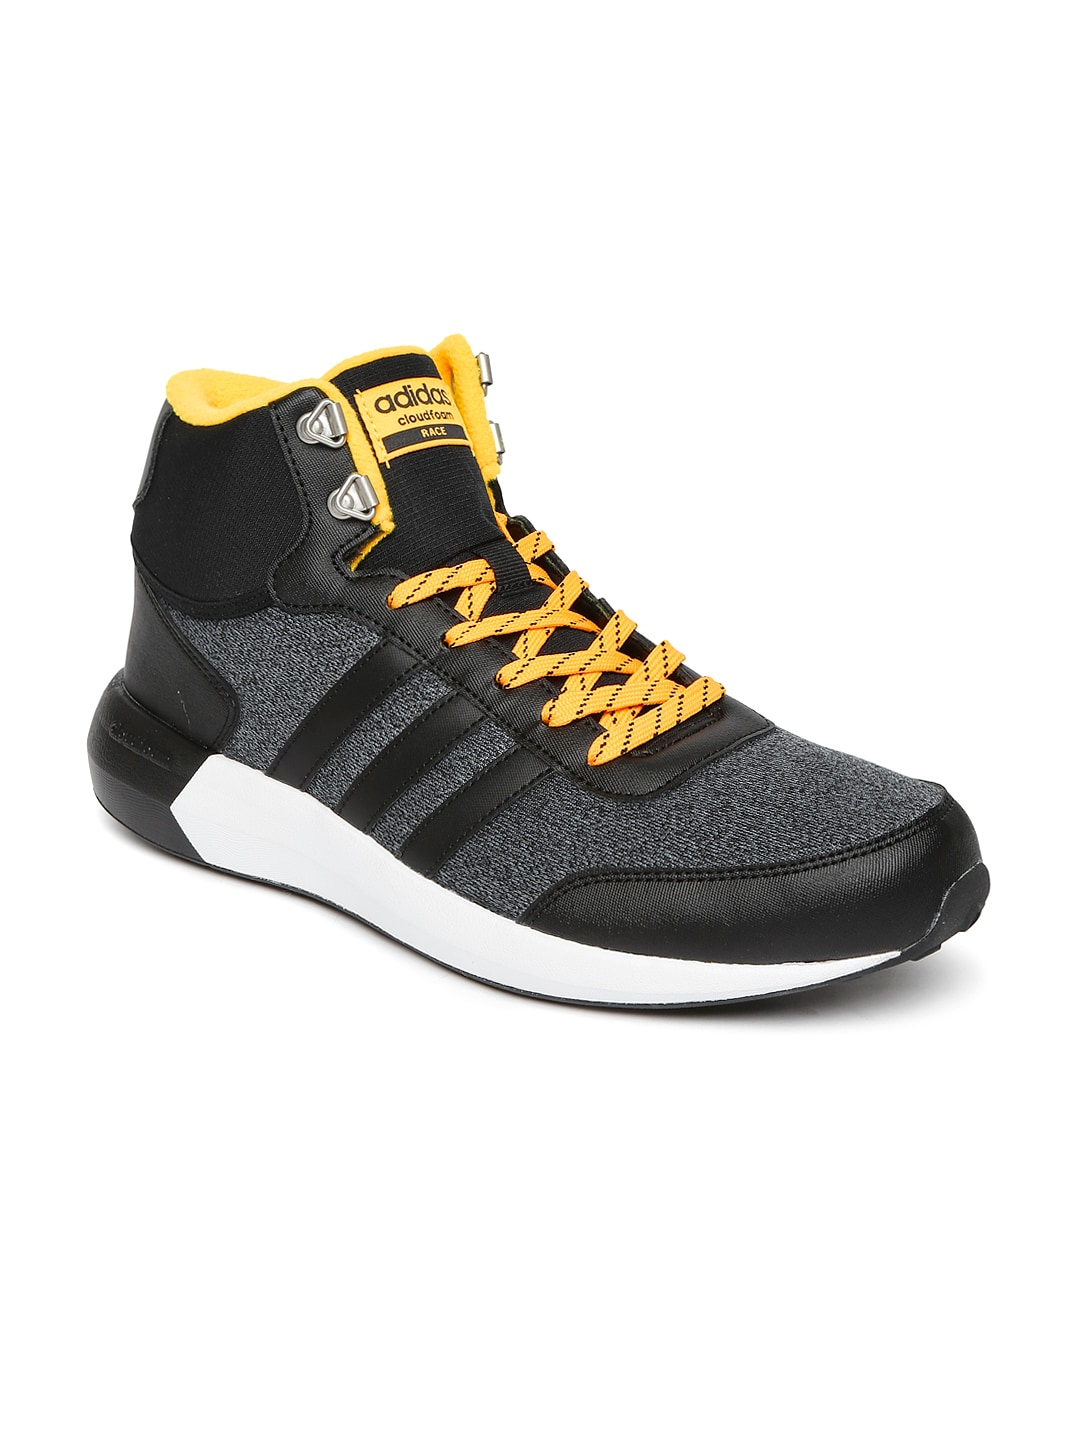 78e2d55f7f2b Adidas aw5274 Neo Men Black And Grey Solid Cloudfoam Race Wtr Mid Top  Sneakers- Price in India